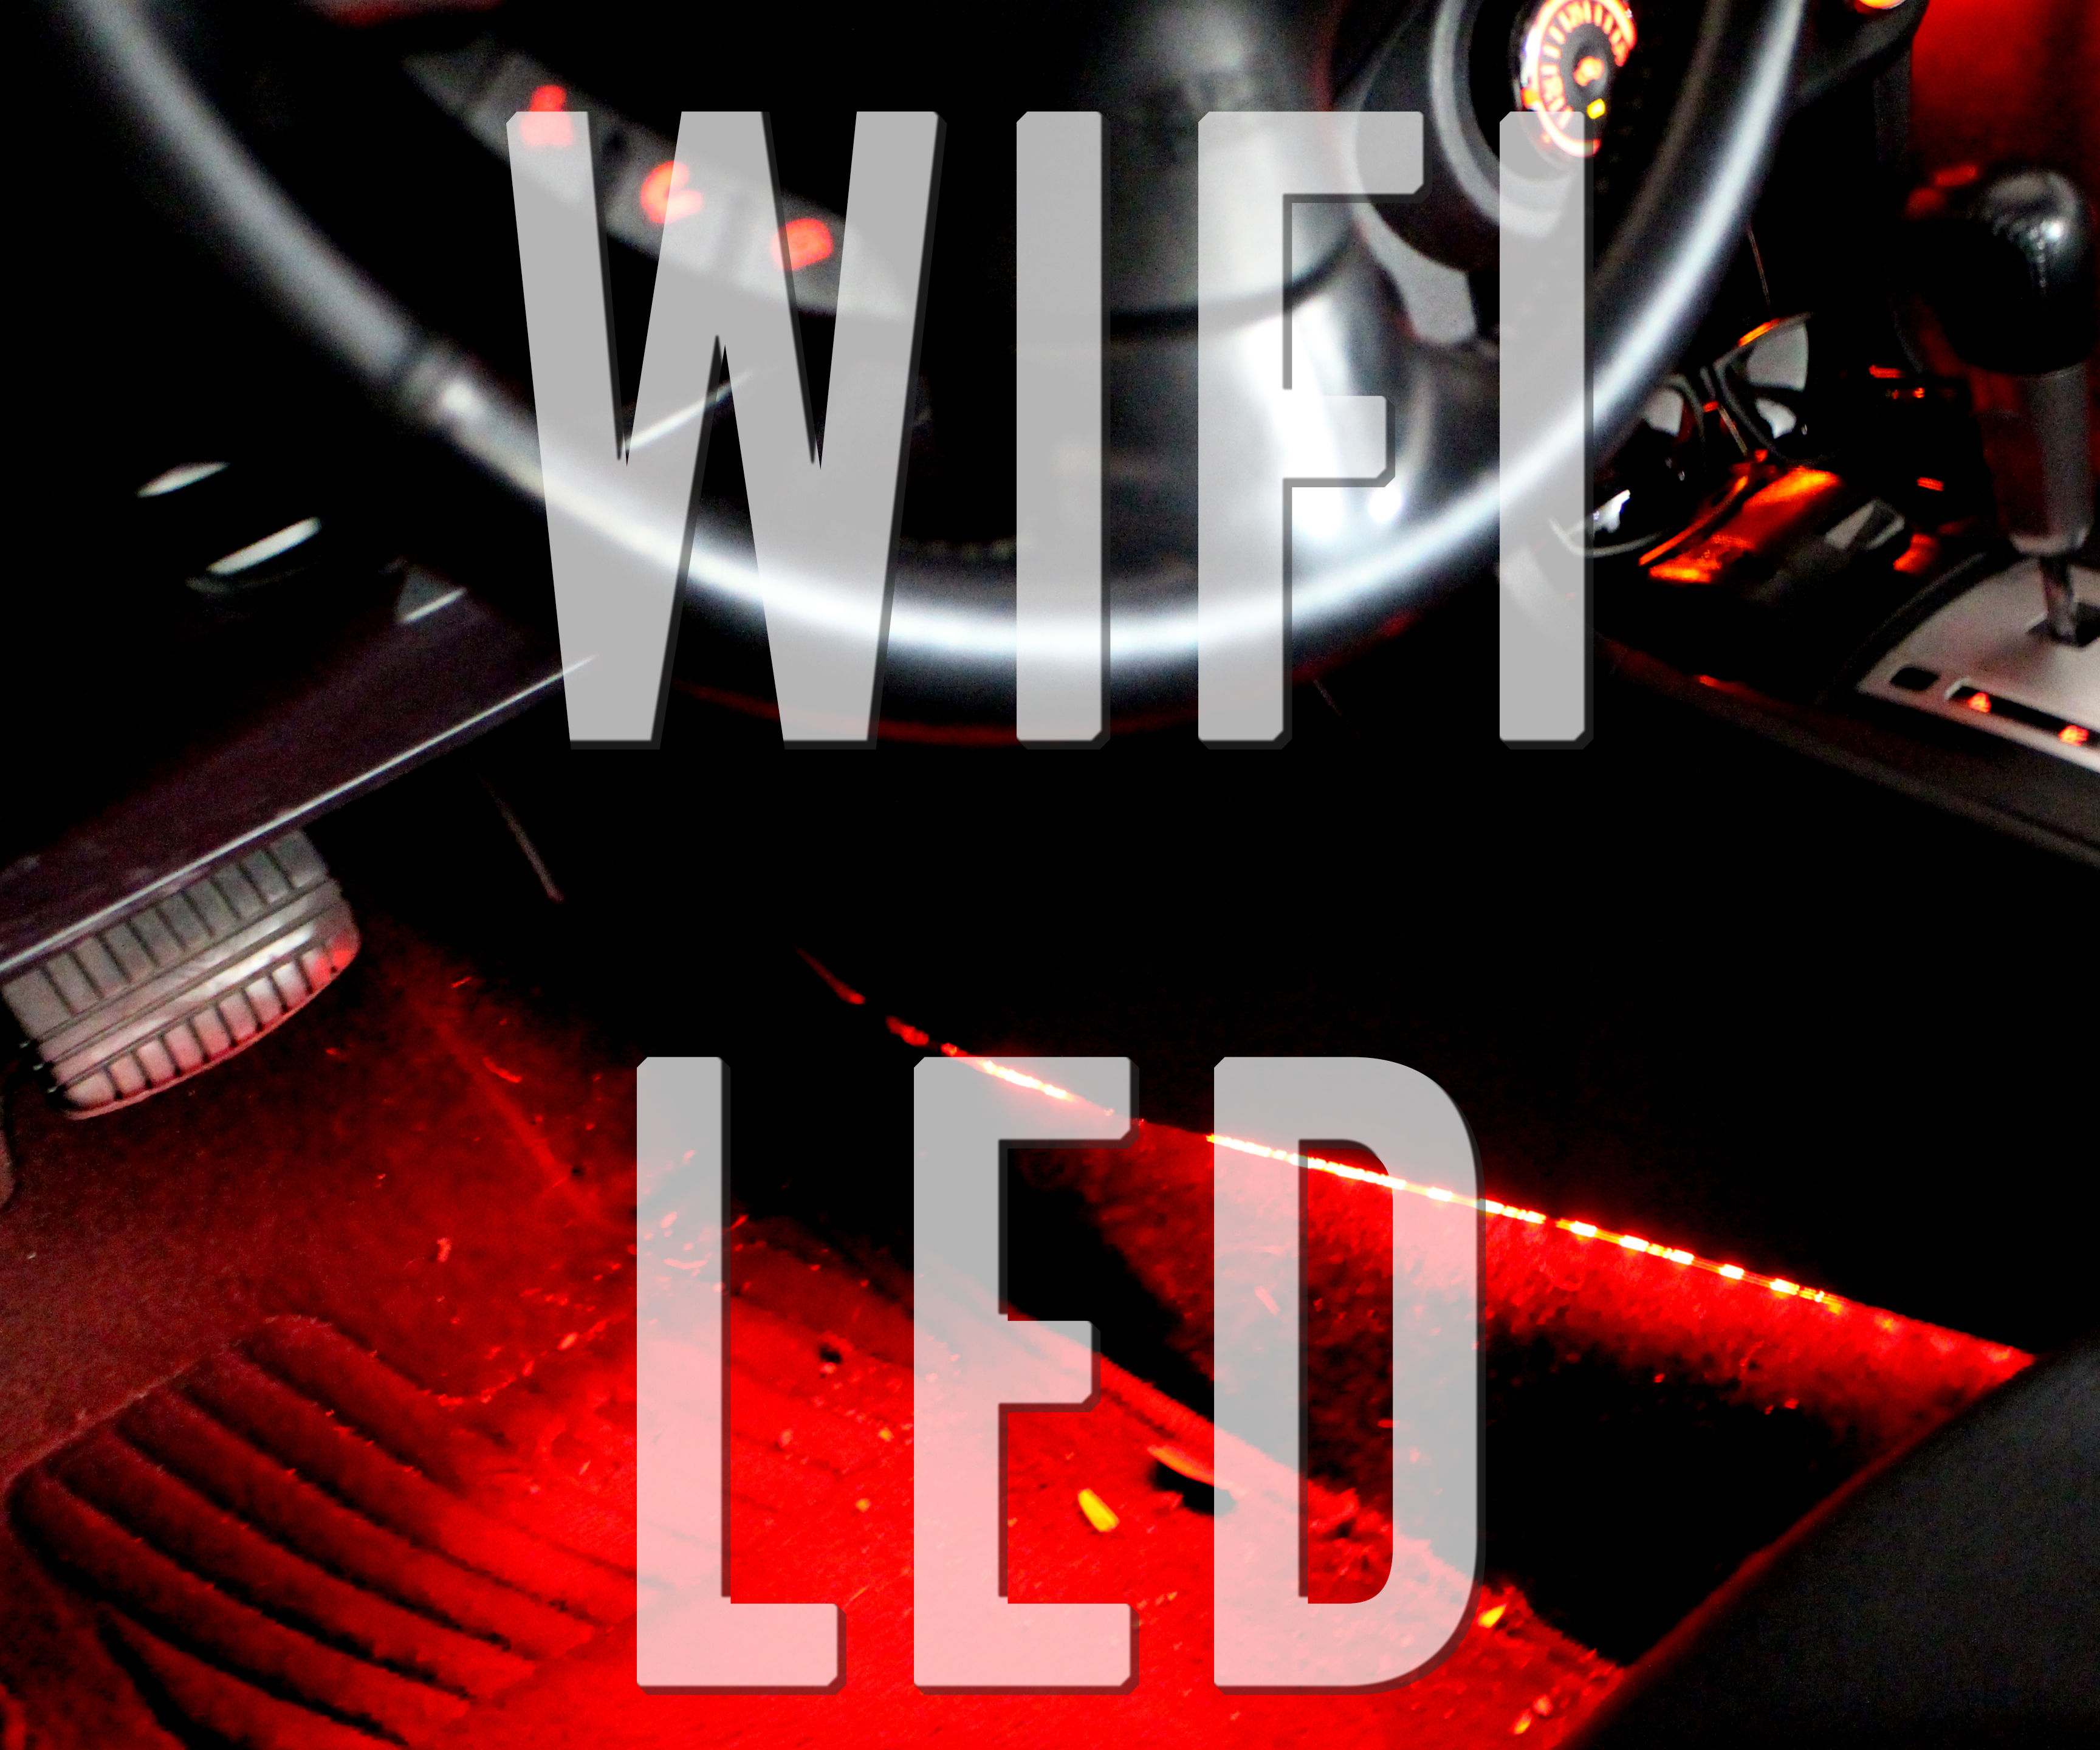 Wifi Controlled Interior Lights (car)